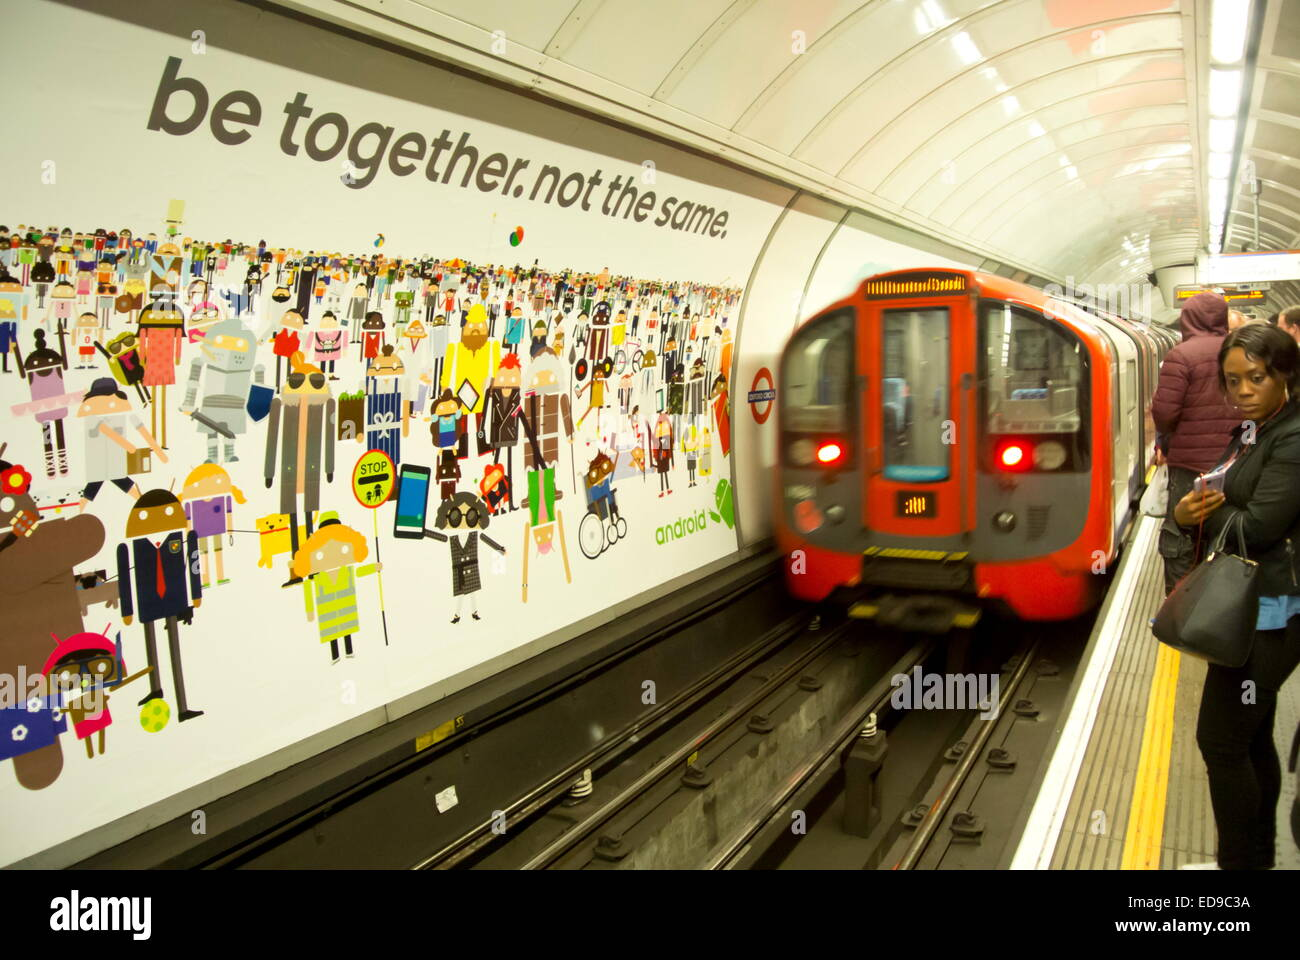 A London Underground train arrives at the platform of Oxford Circus tube station on the Victoria line, London, UK - Stock Image